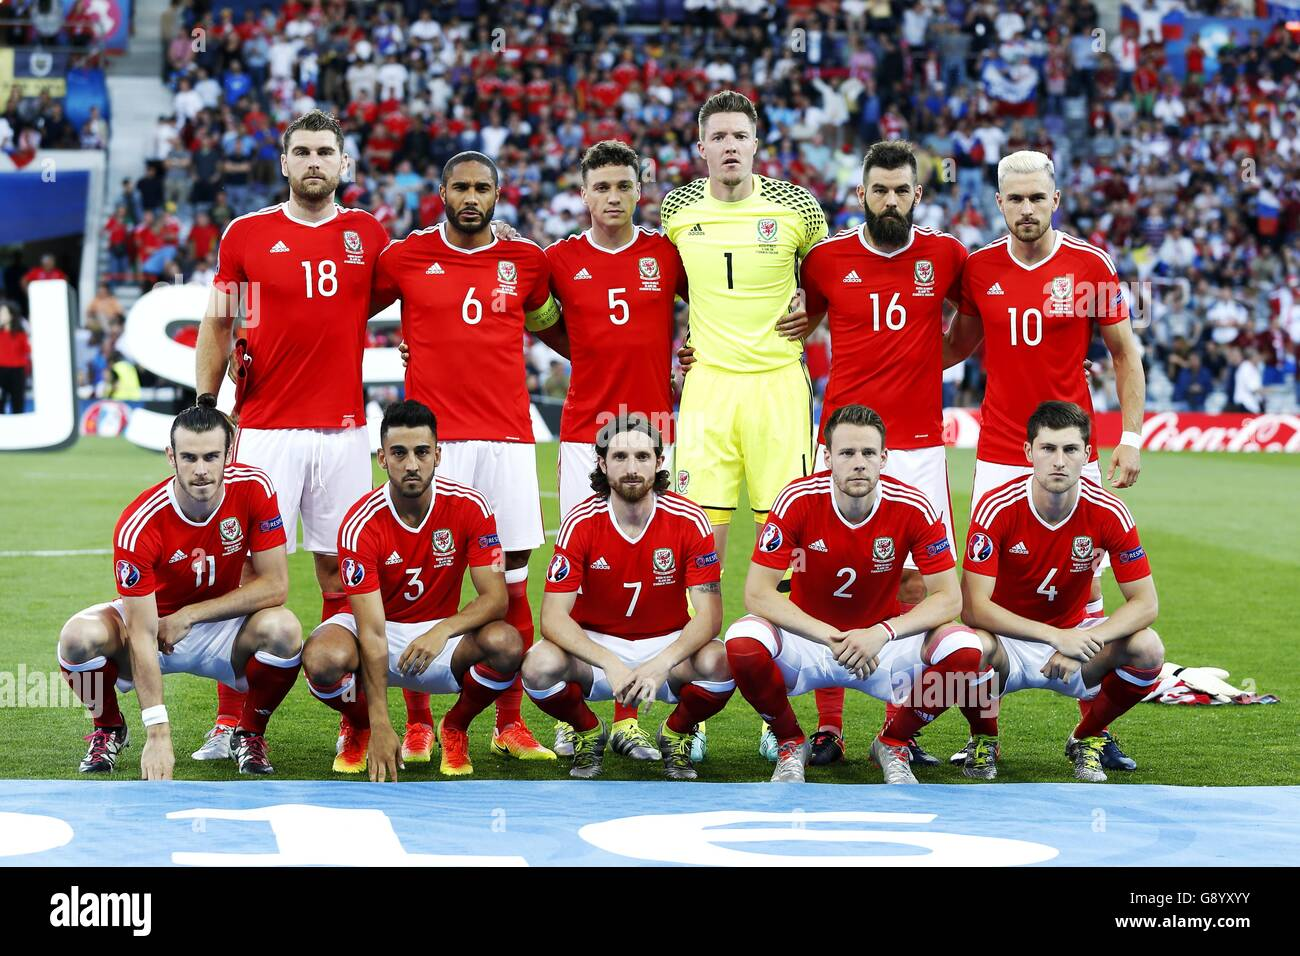 wales team group line up wal jun 20 2016 football soccer stock photo royalty free image. Black Bedroom Furniture Sets. Home Design Ideas